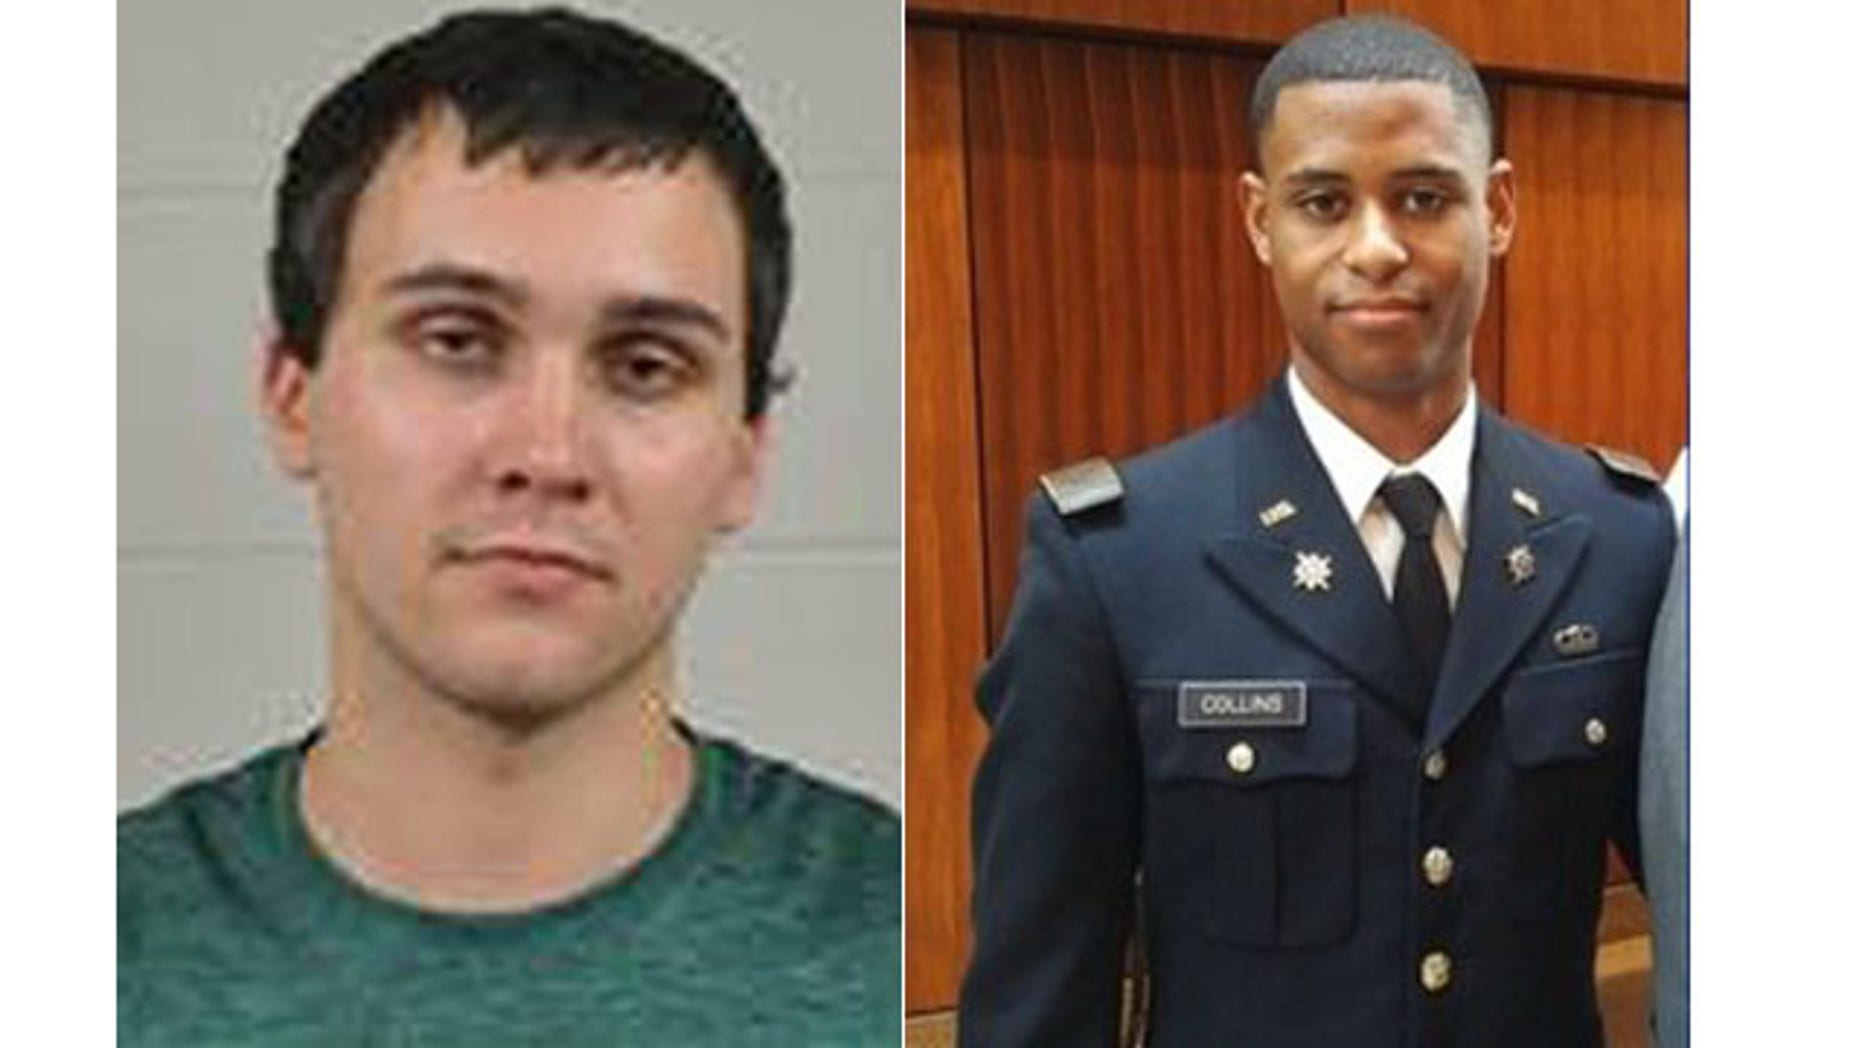 These undated images show Sean Urbanski, at left, and Richard Collins III. Urbanski is accused of stabbing Collins on the University of Maryland campus in College Park early Saturday, May 20, 2017.